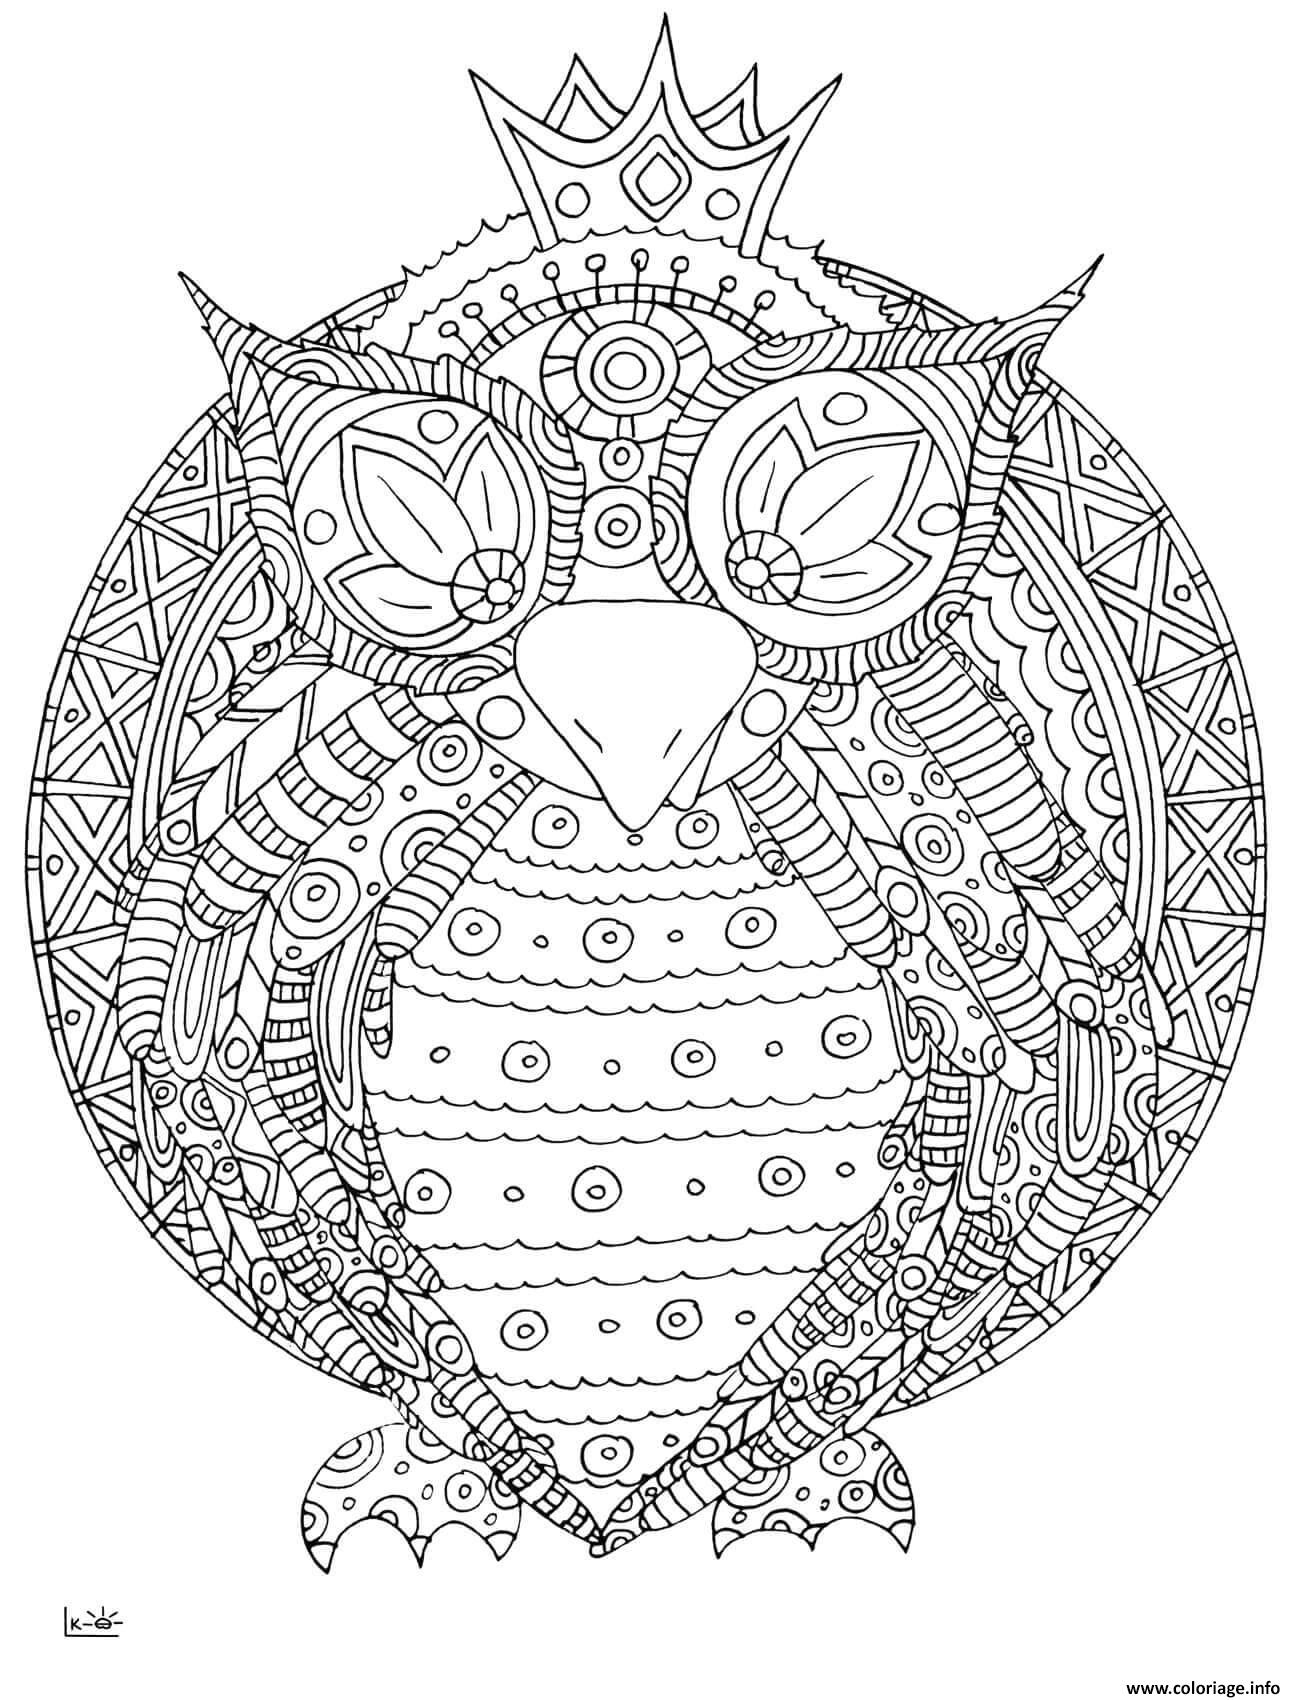 Coloriage Owl With Tribal Pattern Adulte Dessin à Imprimer